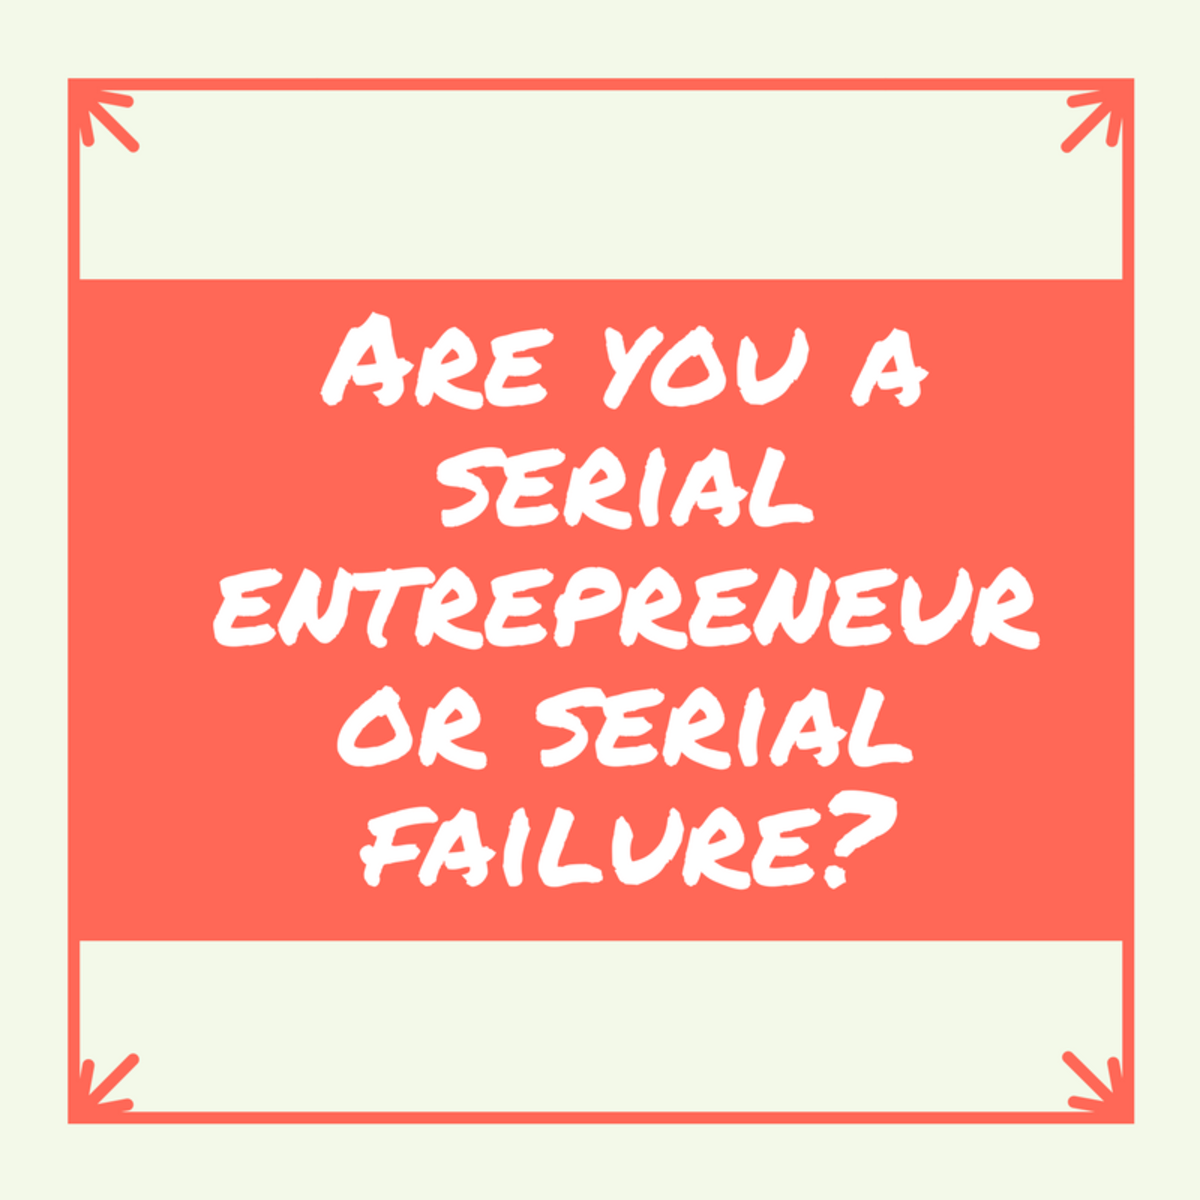 Do multiple unsuccessful business ventures make you a serial entrepreneur—or just a serial failure?